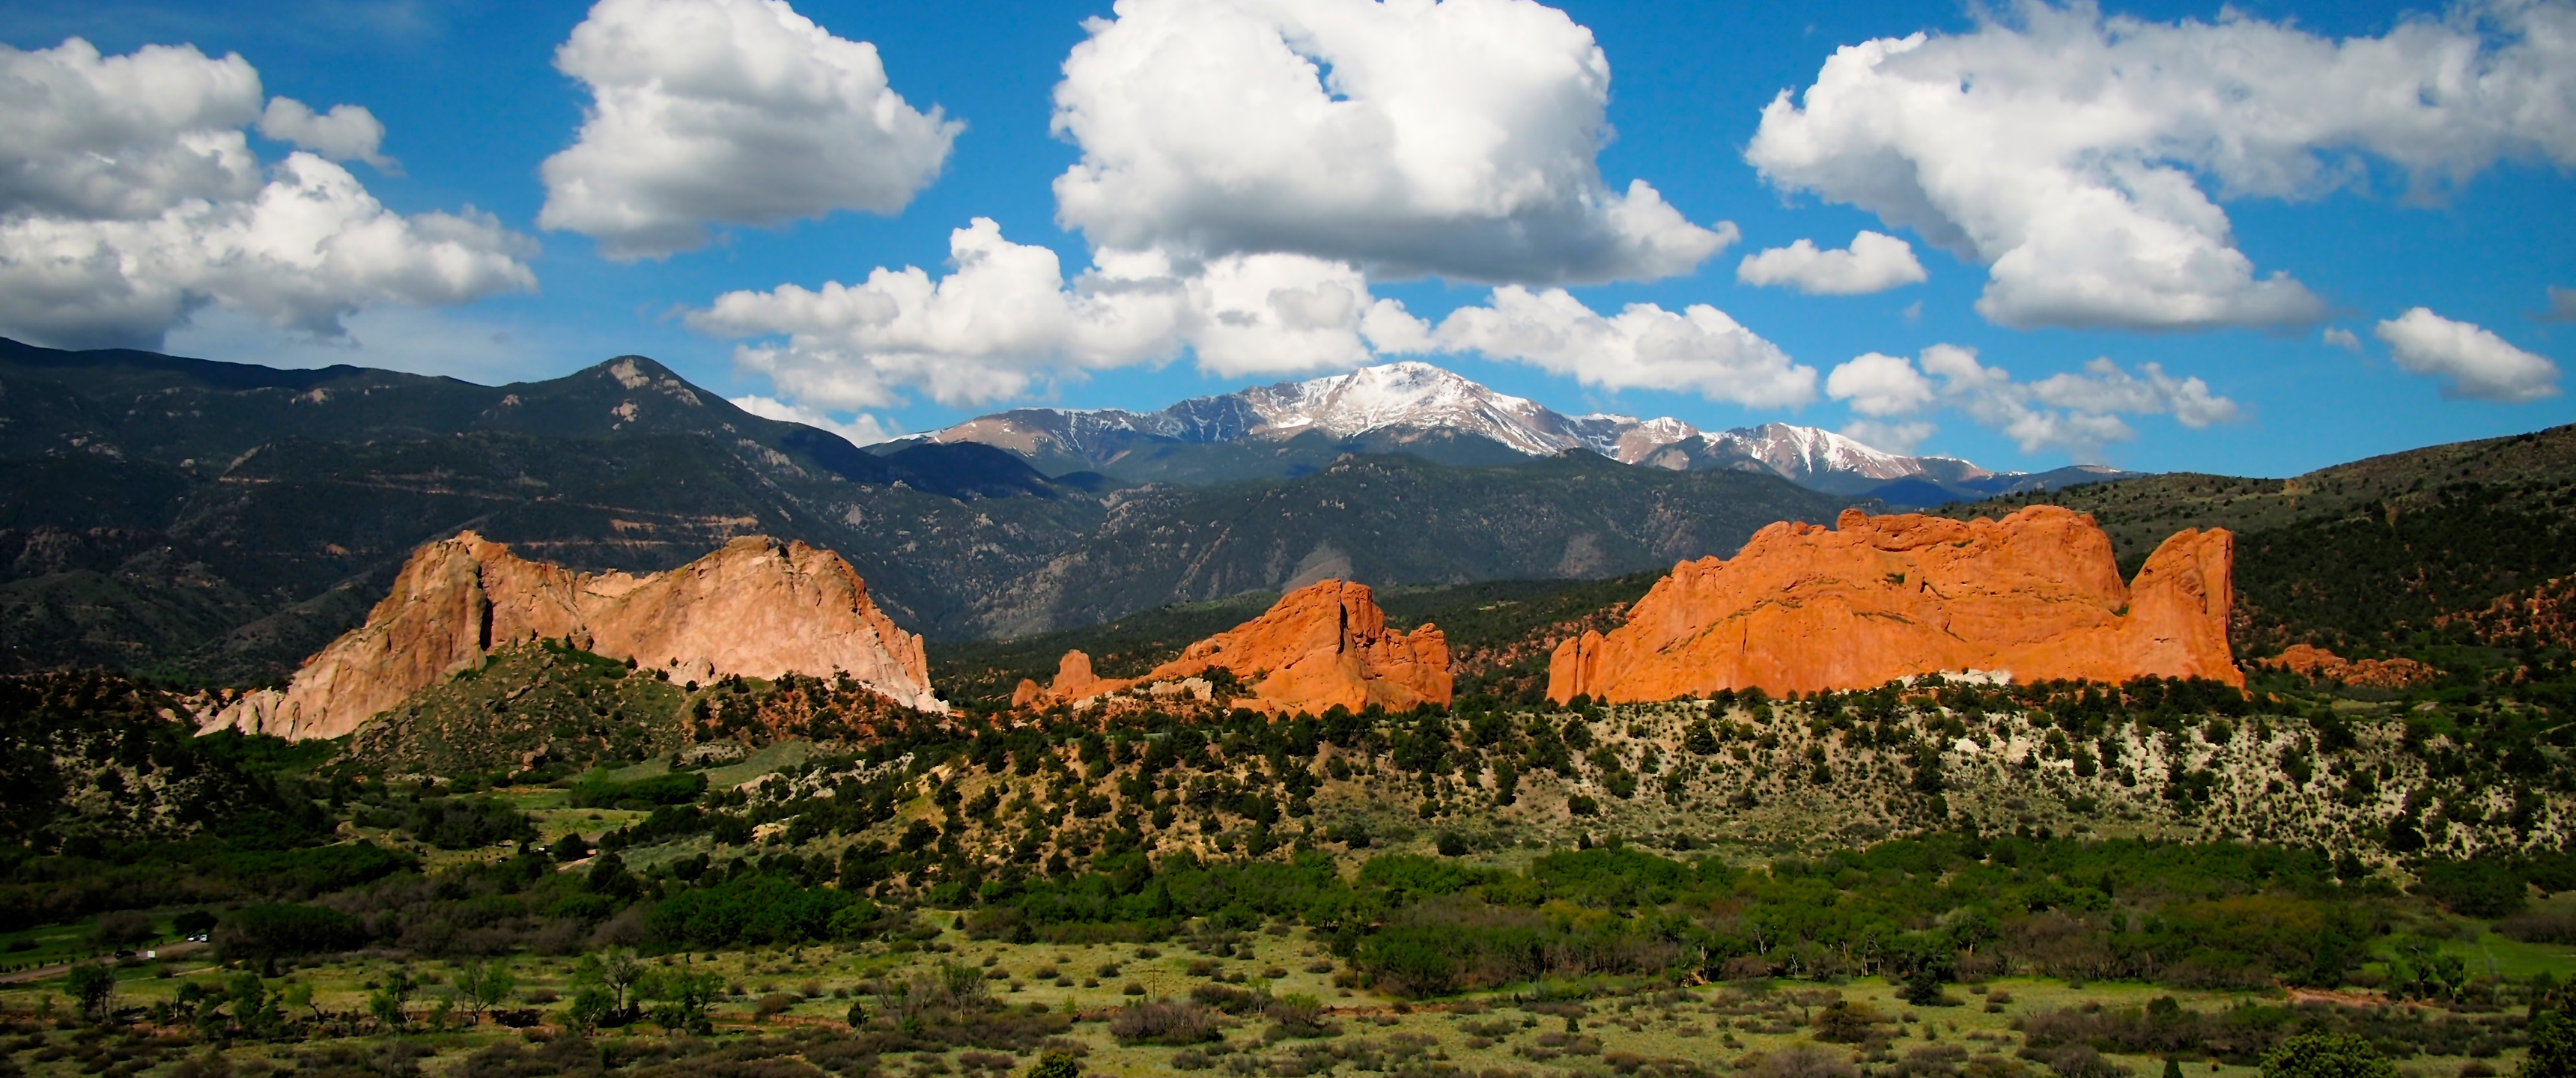 Download Garden Of The Gods Wallpaper Gallery